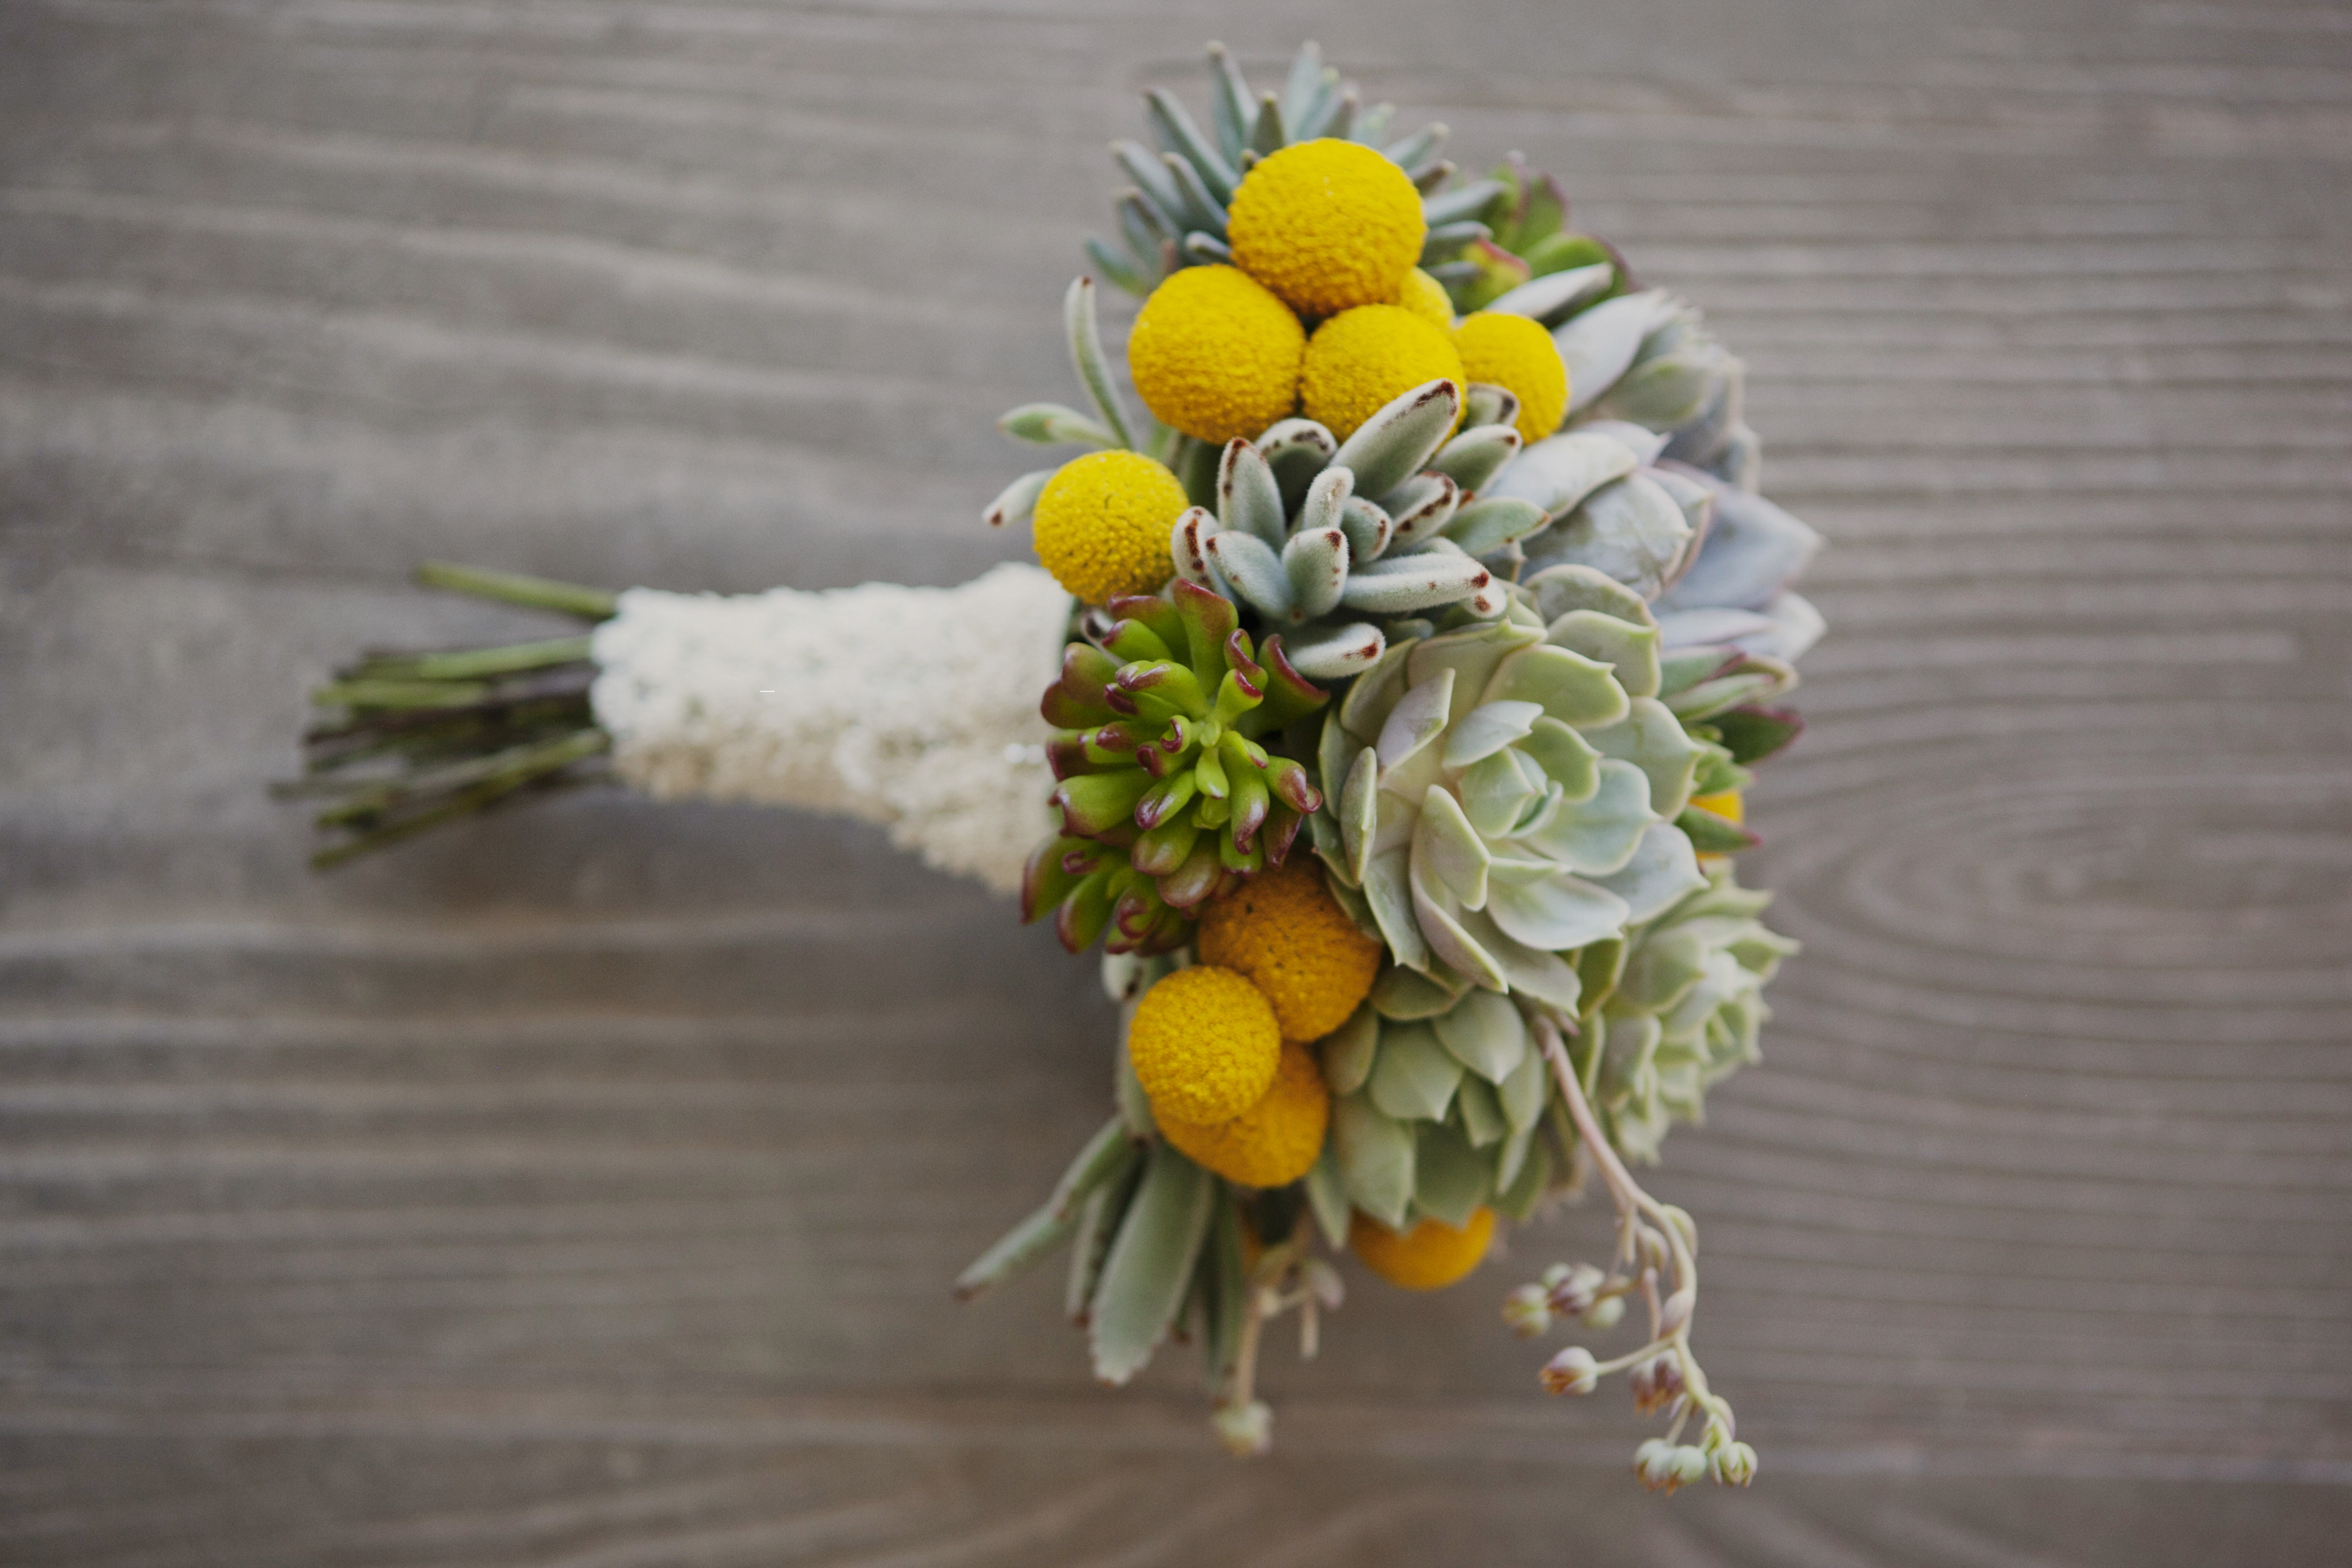 yellow, Bouquet, Billy, Balls, Succulent, Andrea eric